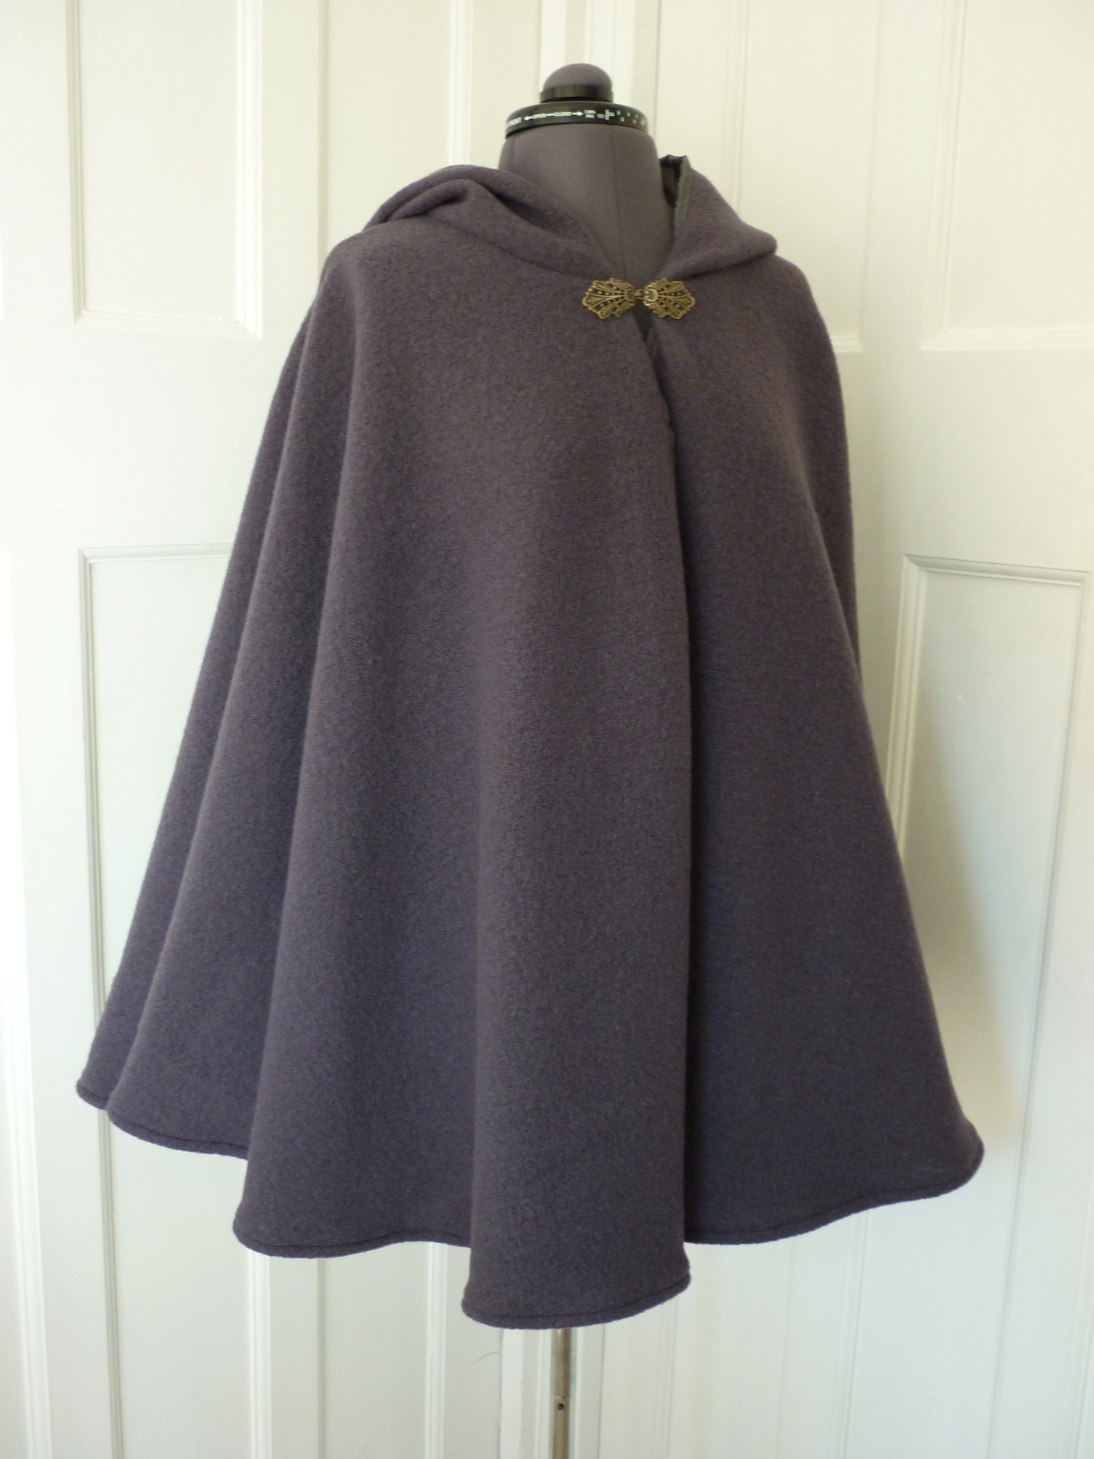 Wool cape with contrasting lining - round hood - choice of colours - made to order